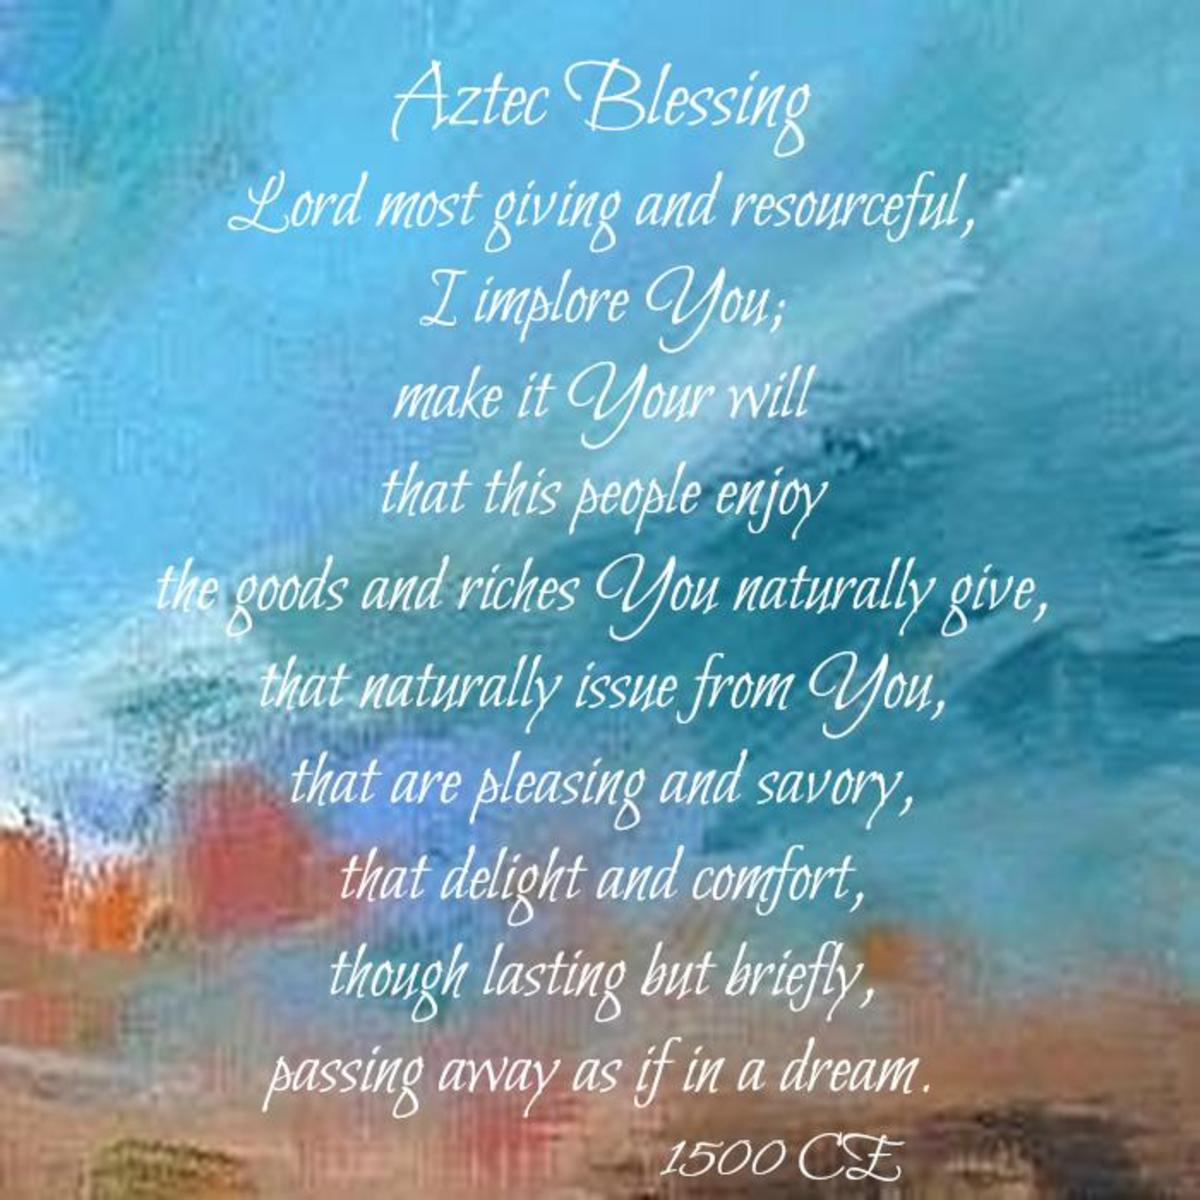 Aztec Blessing of Gratitude